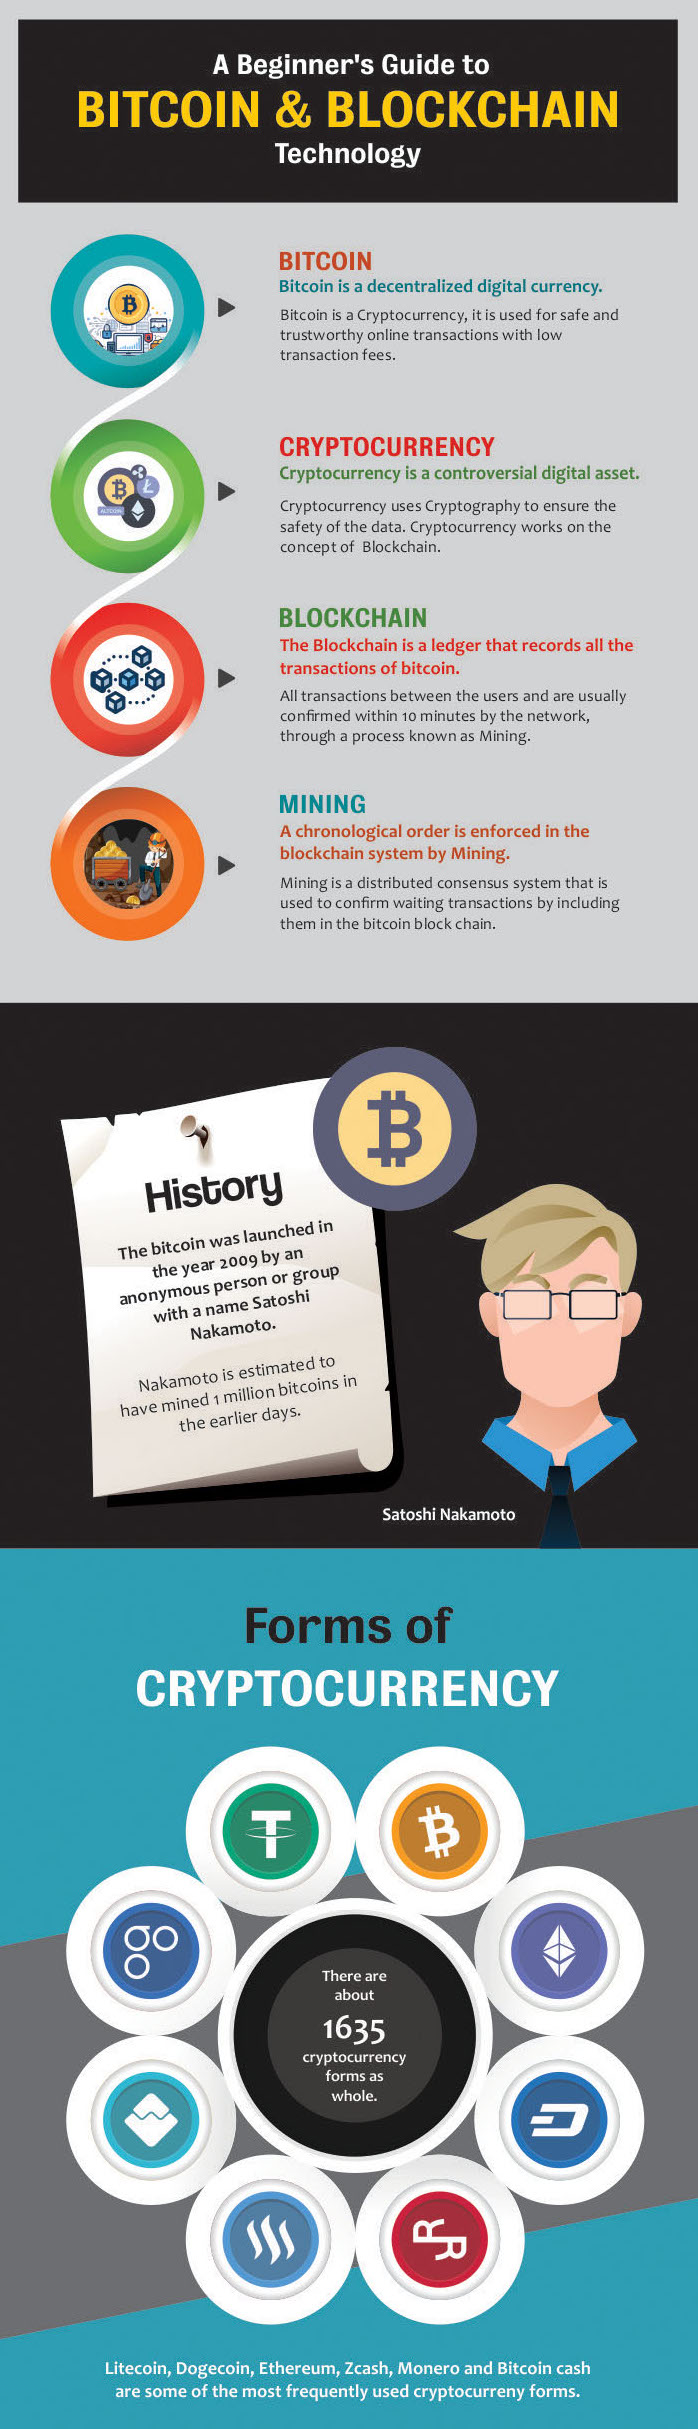 Beginner's guide to Bitcoin and Blockchain technology, Holytransaction